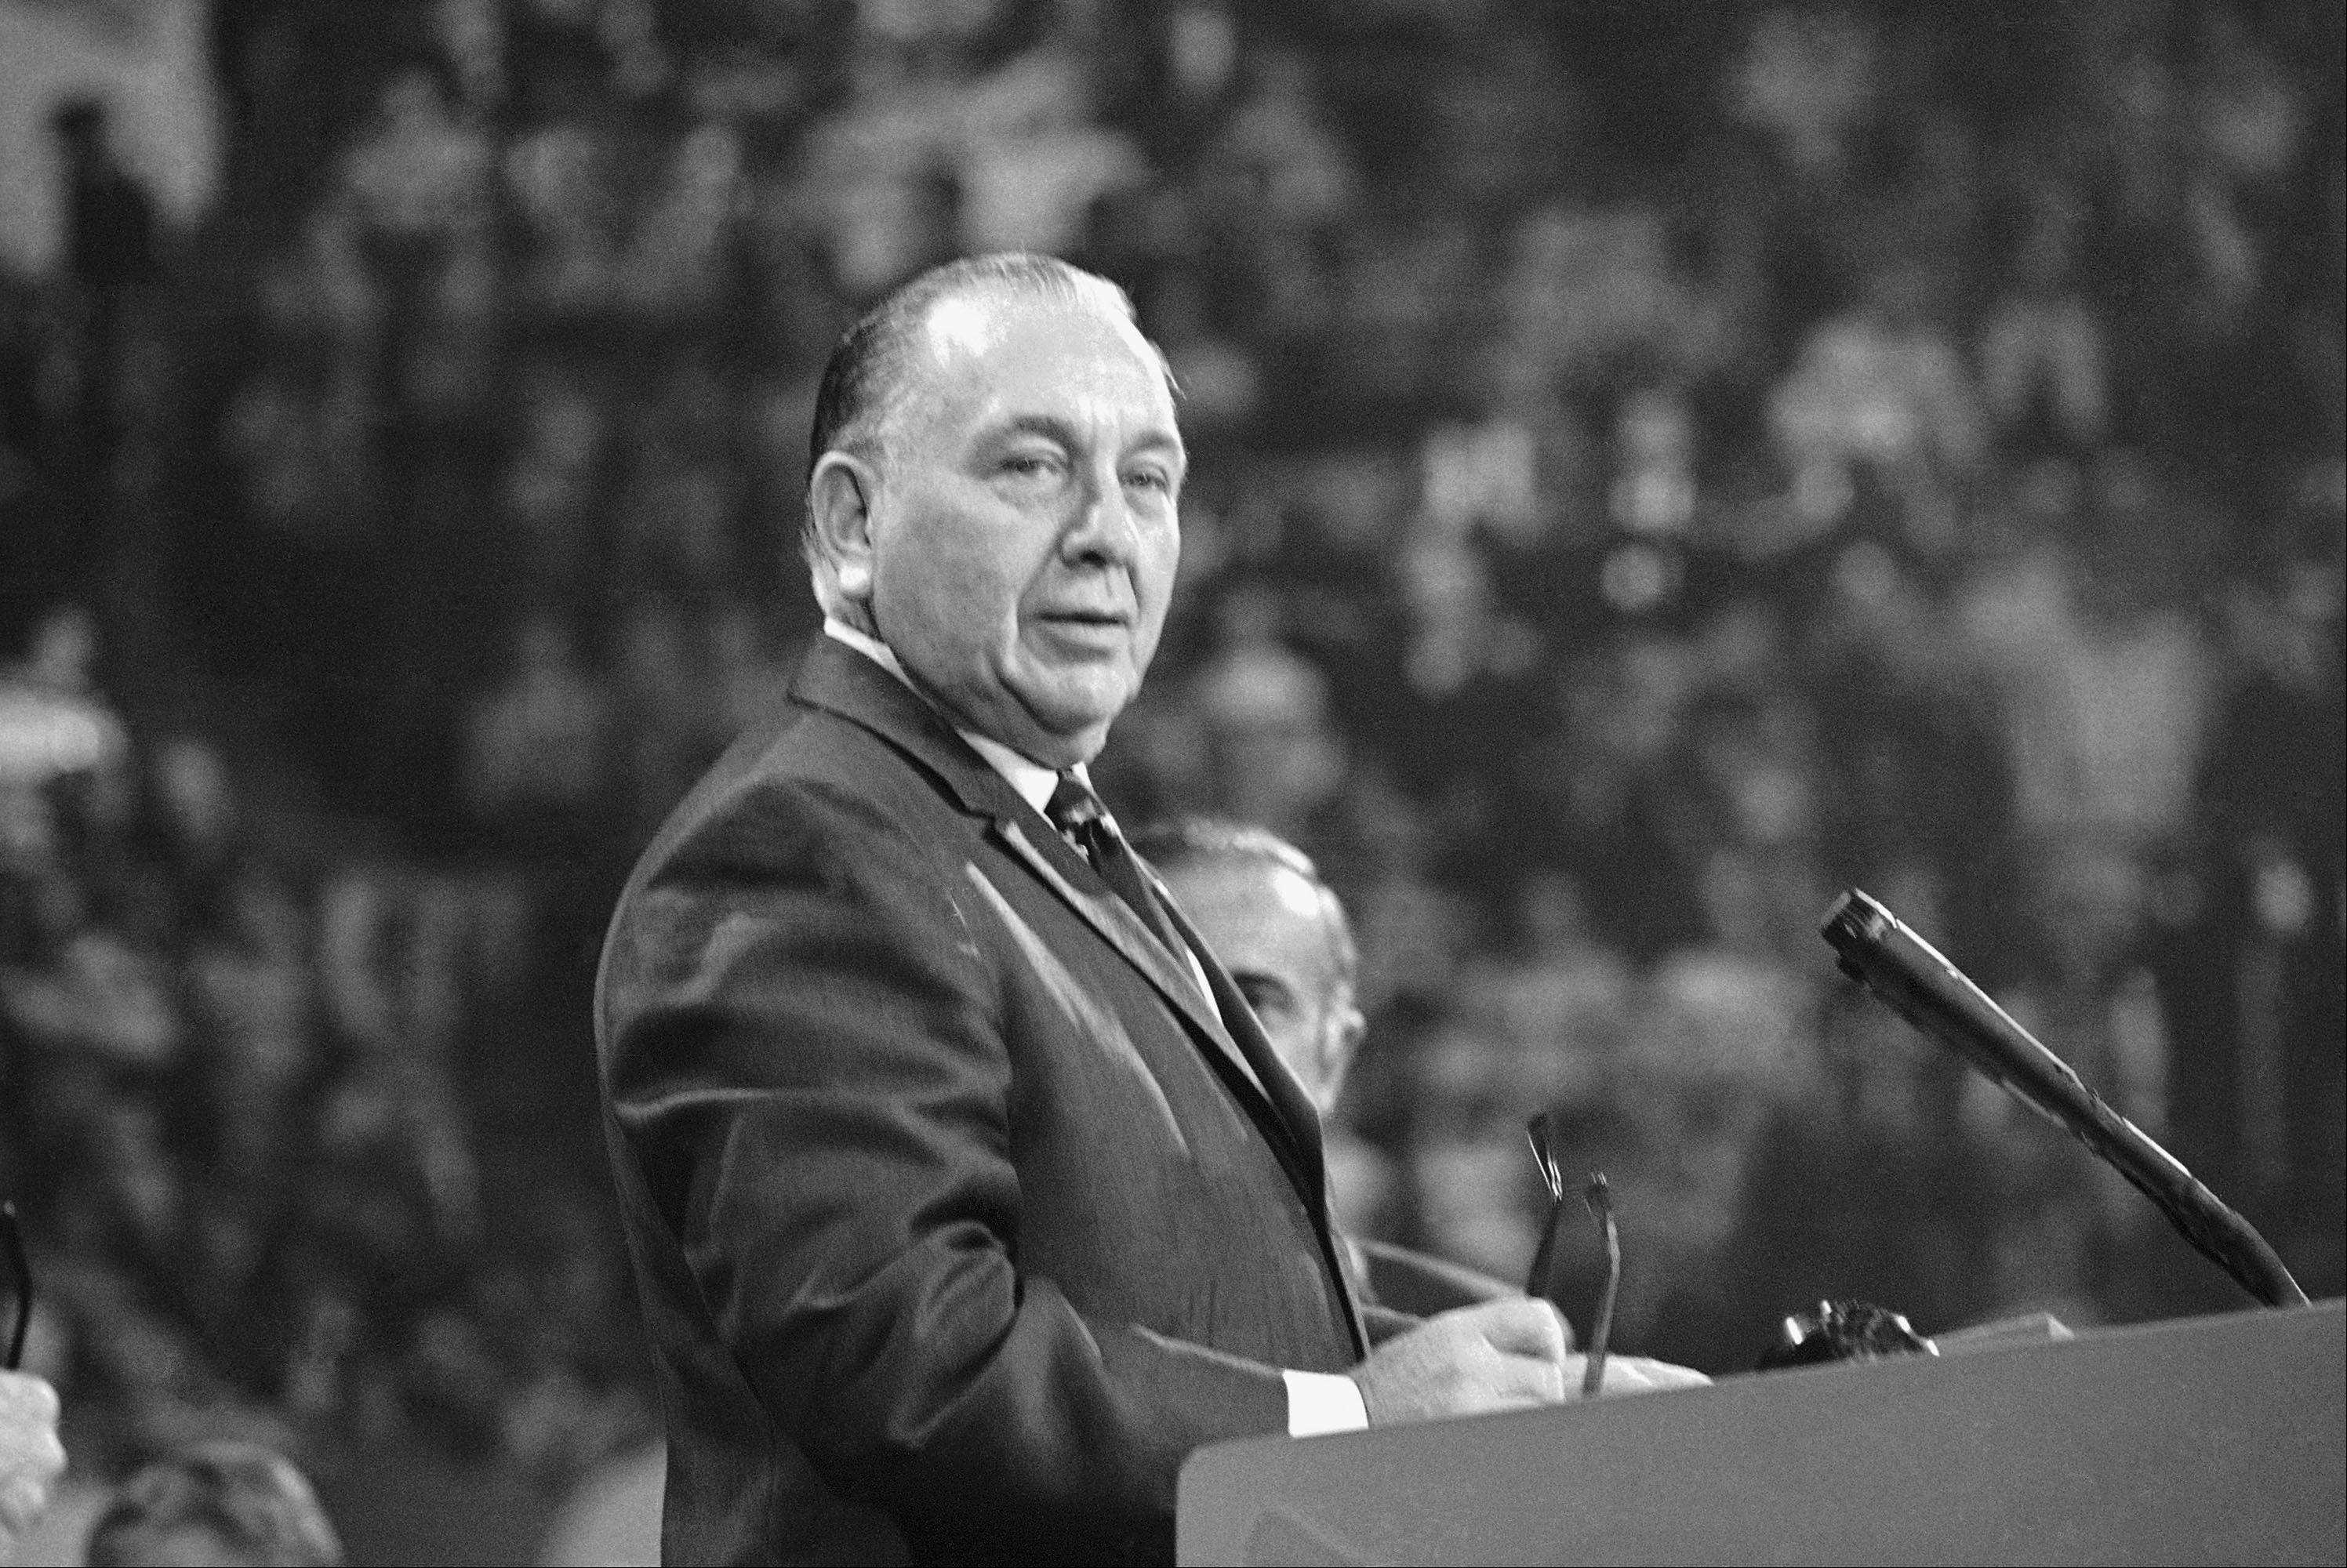 Richard J. Daley was mayor of Chicago from 1955 until his death in 1976.